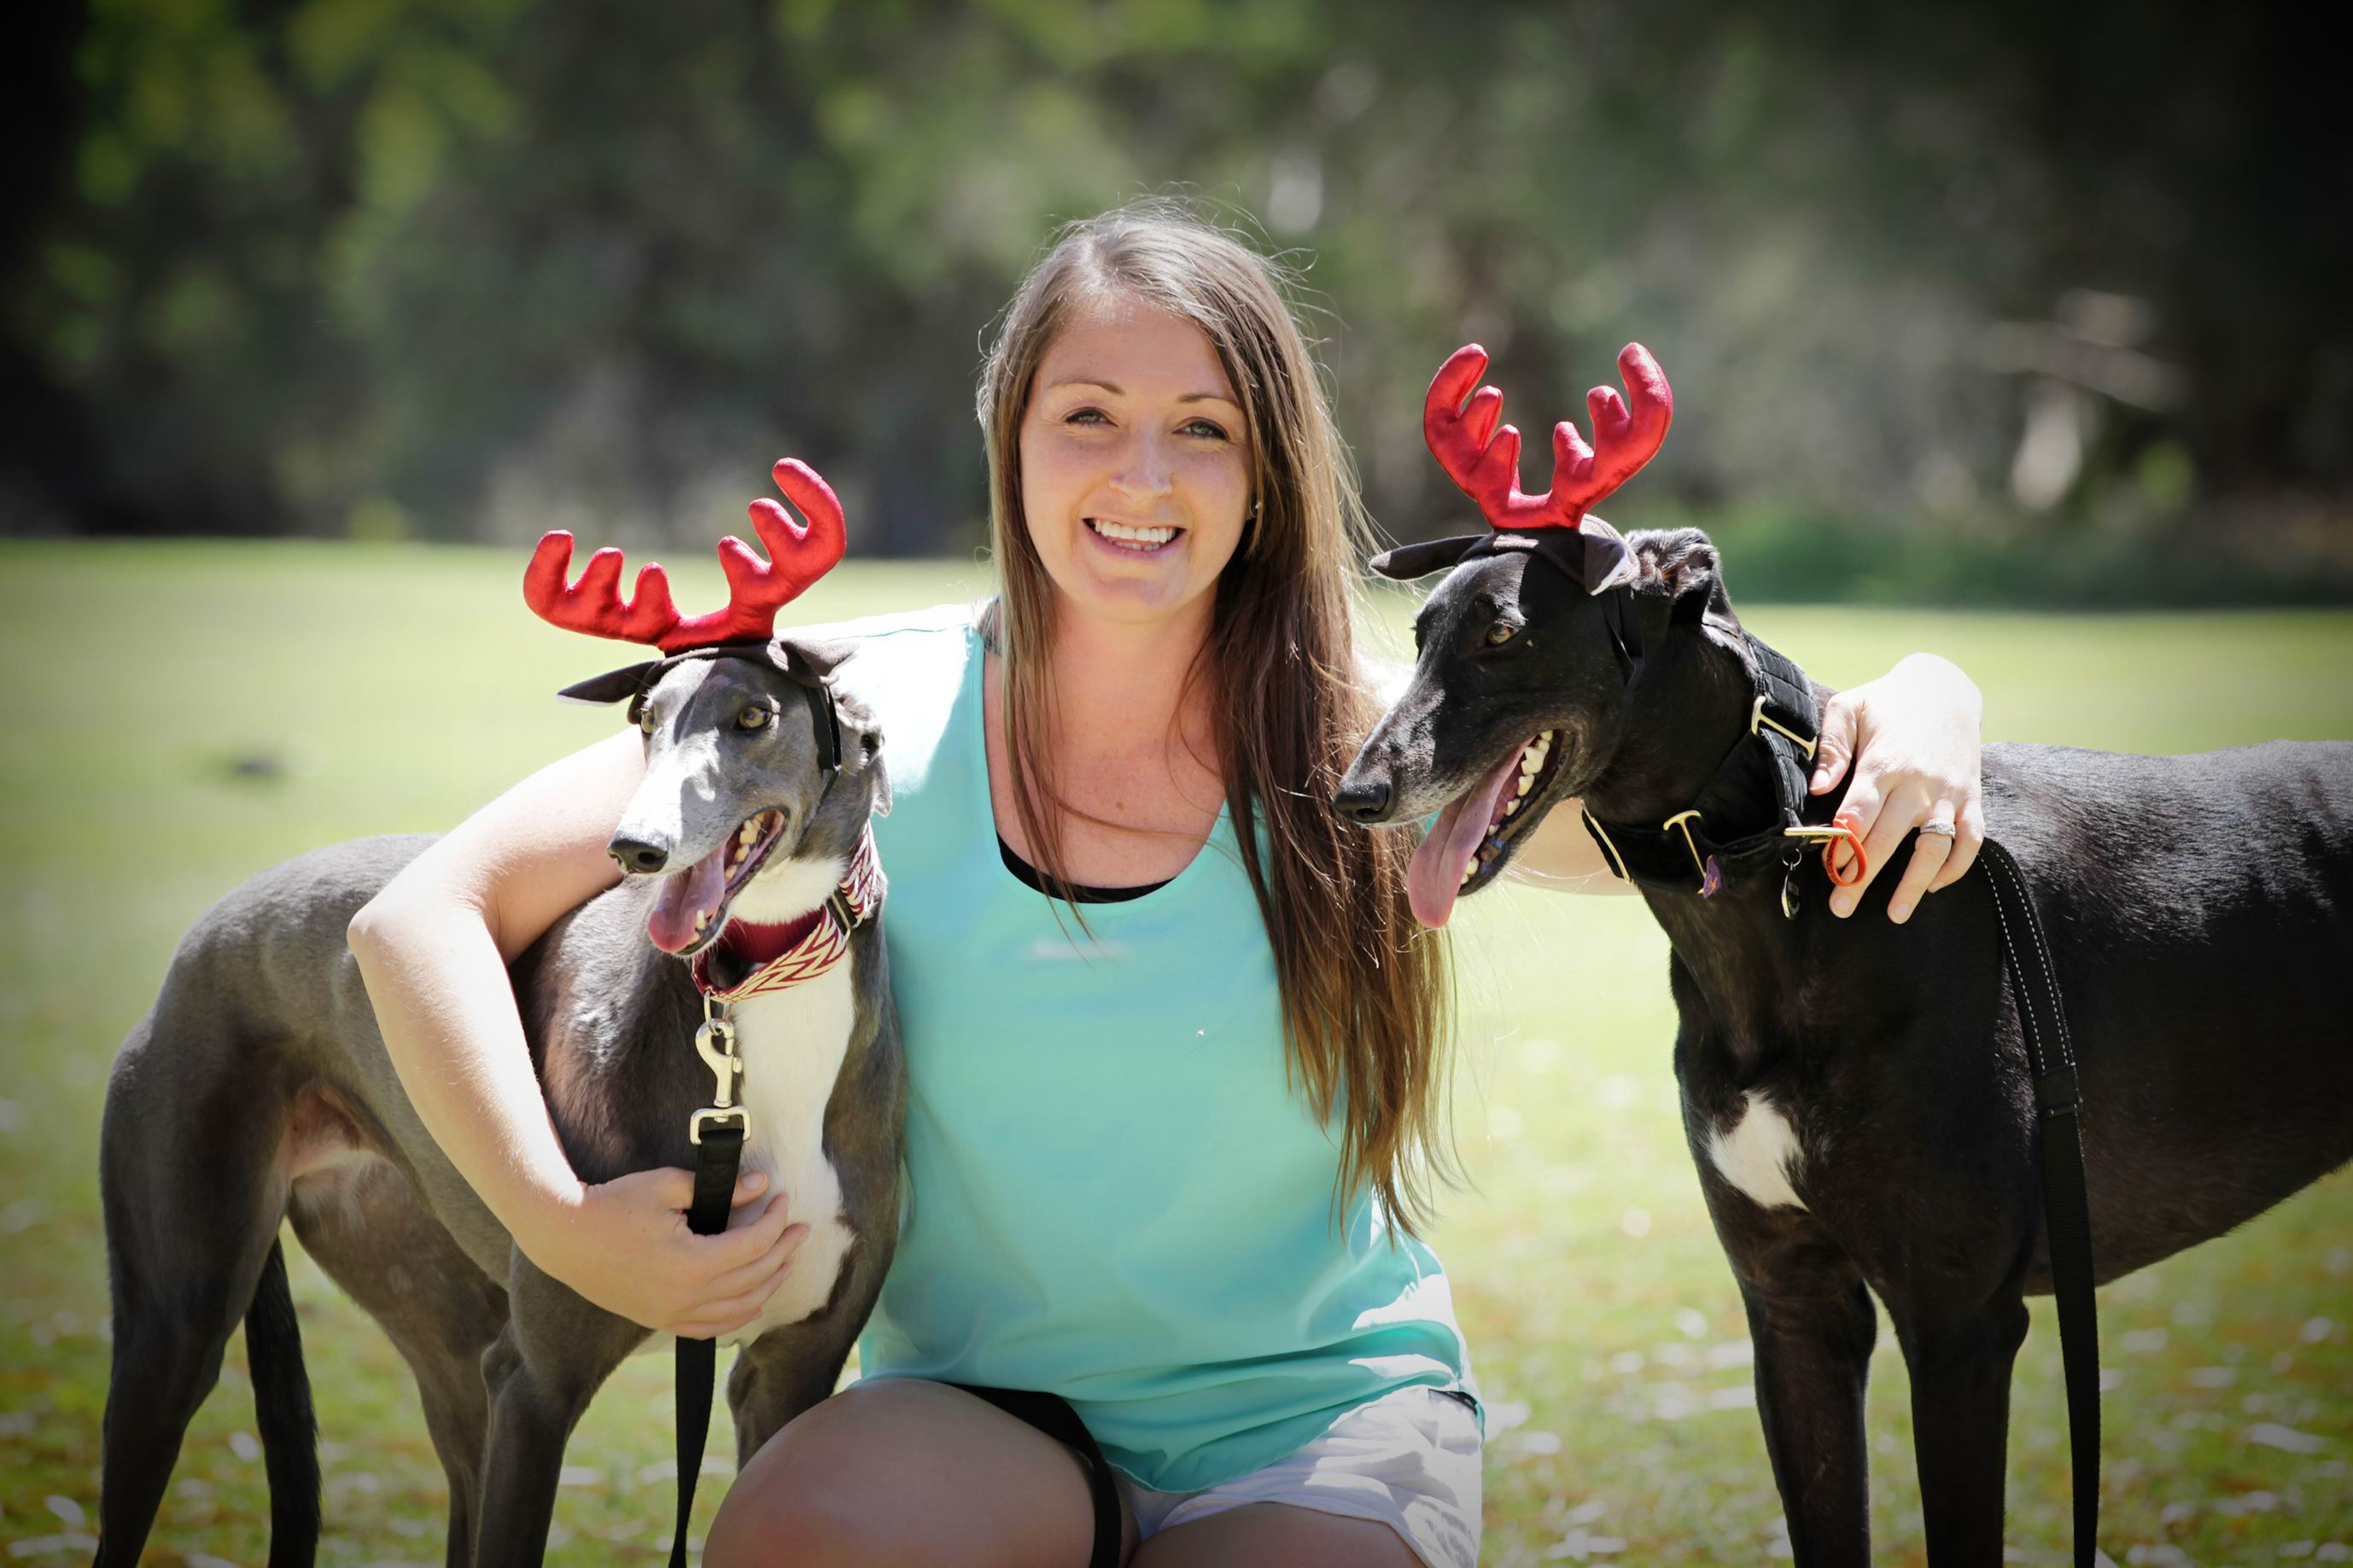 Marie Bloemer with Russian and Mitch. Rehoming and rescuring greyhounds, a business in Maylnds is hosting an event to raise funds to the greyhound charity Greyhound Adoption WA.